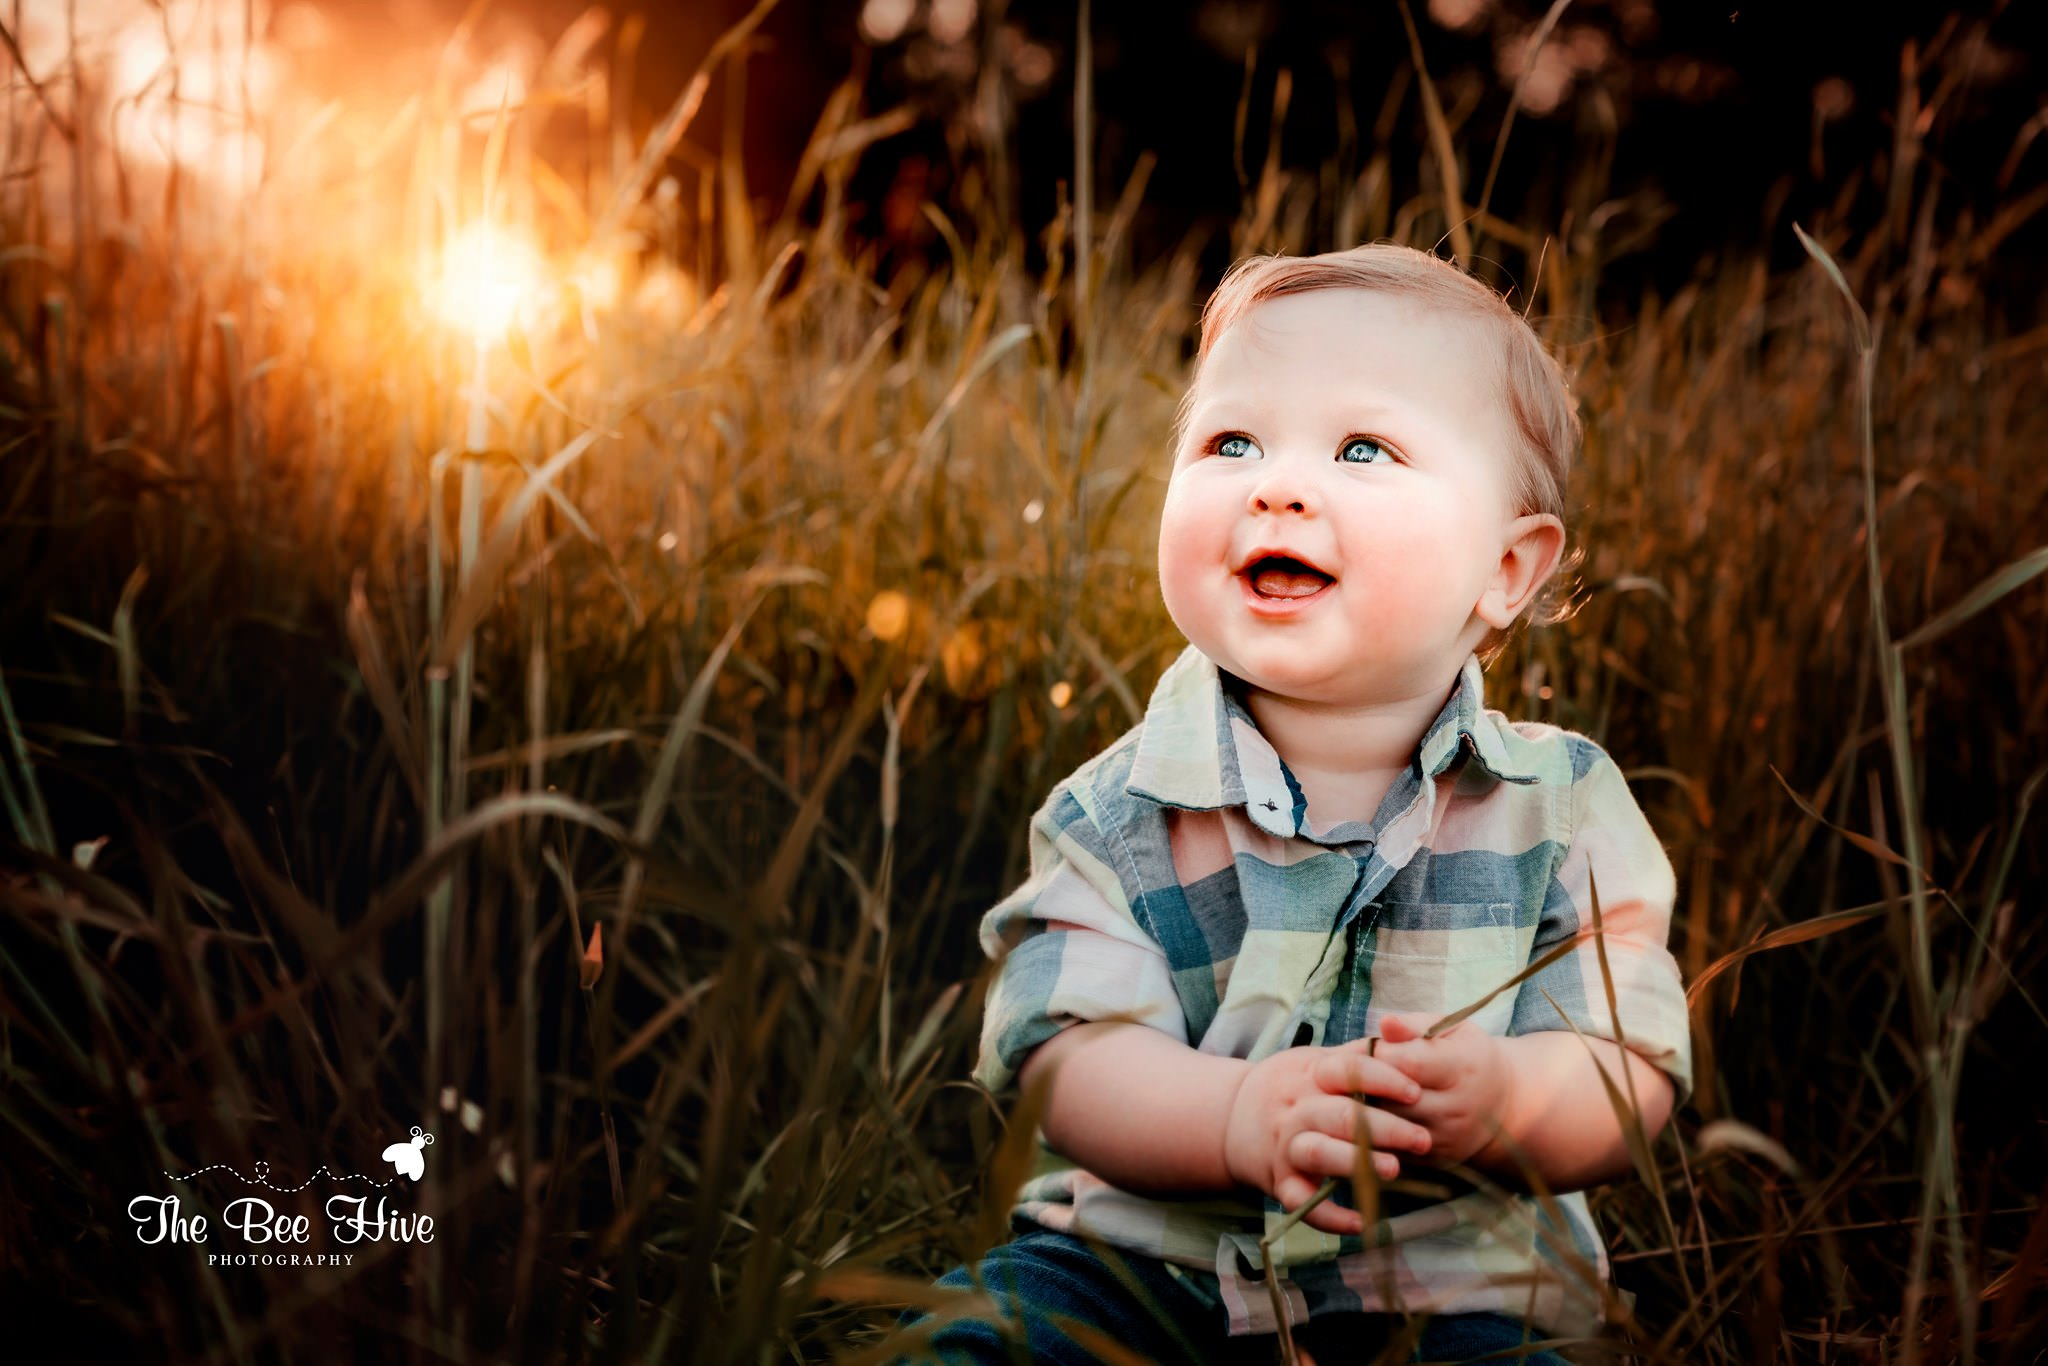 16 Stunning Lens Flare Photos That Will Amaze You Right Away